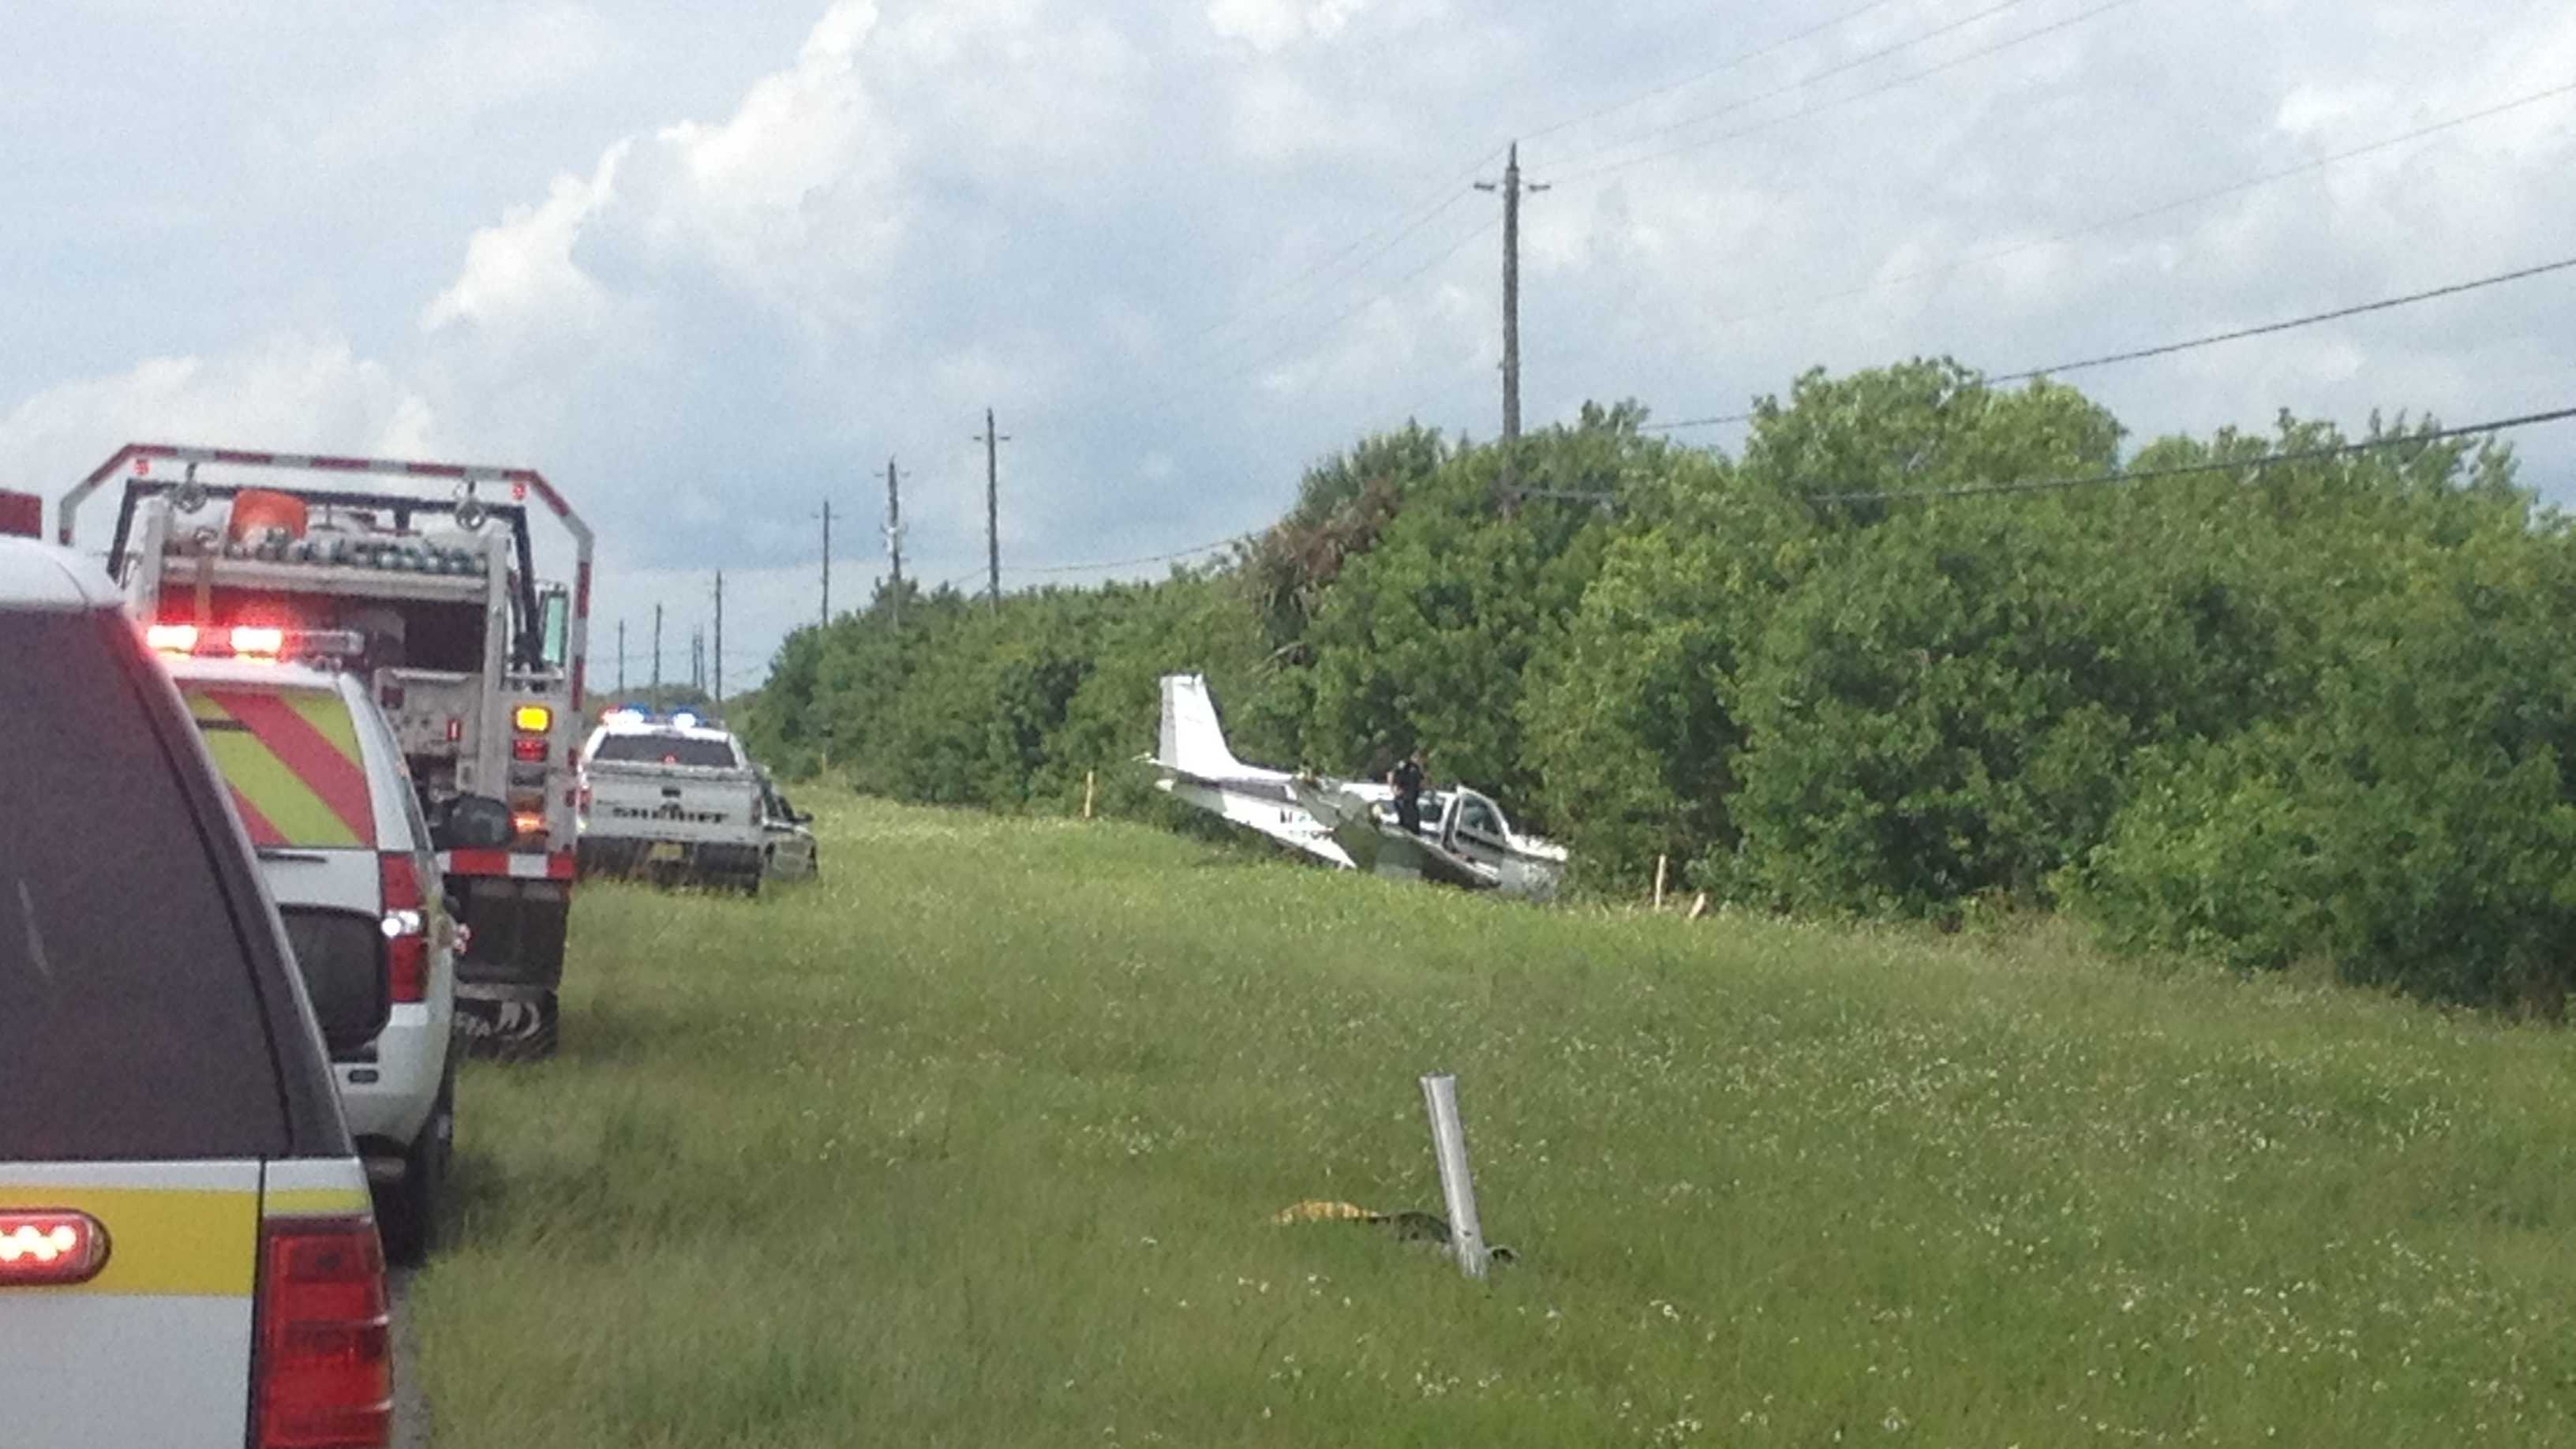 small plane crashes in grass